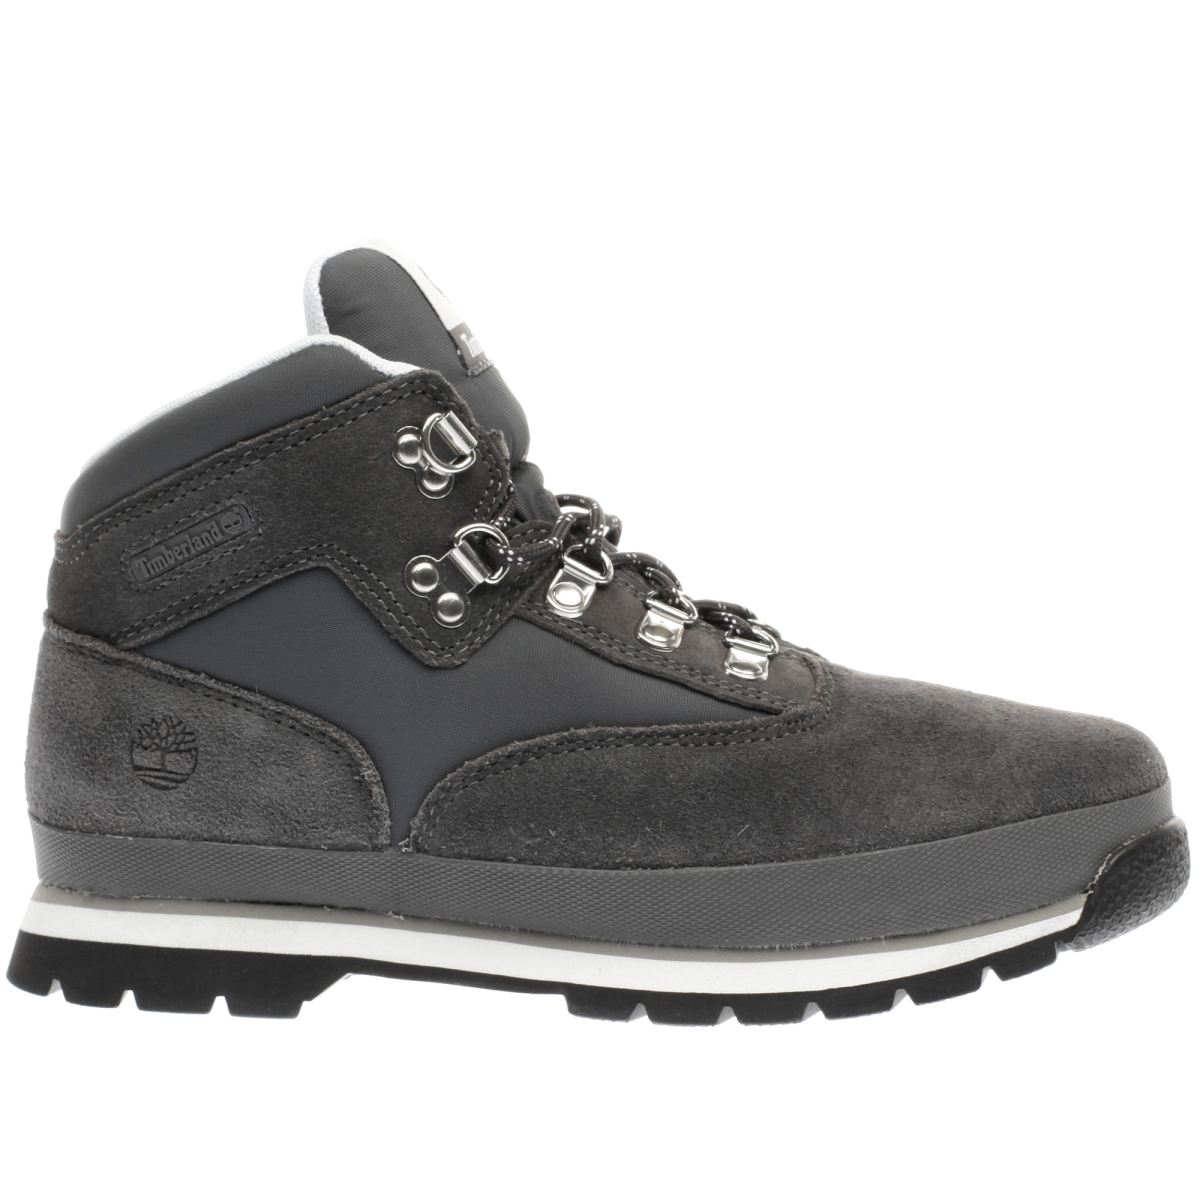 timberland grey euro hiker Boys Youth Boots